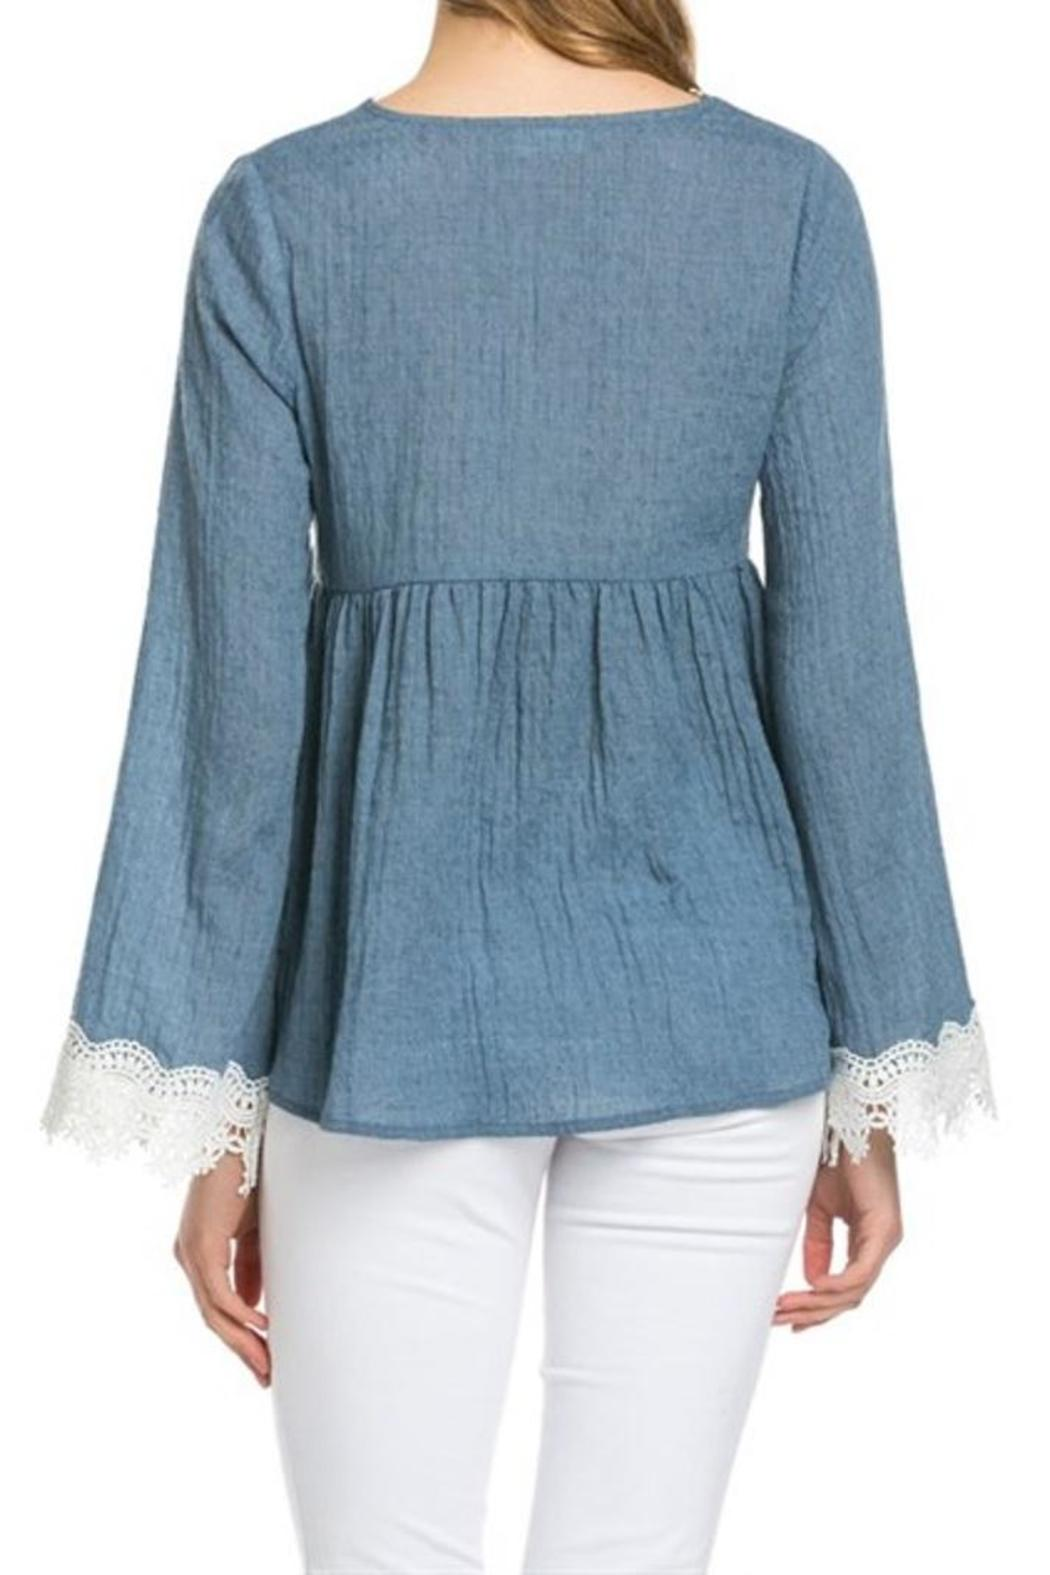 d25462aa485 Denim Bell-Sleeve Top from Laredo by Dollz Boutique — Shoptiques